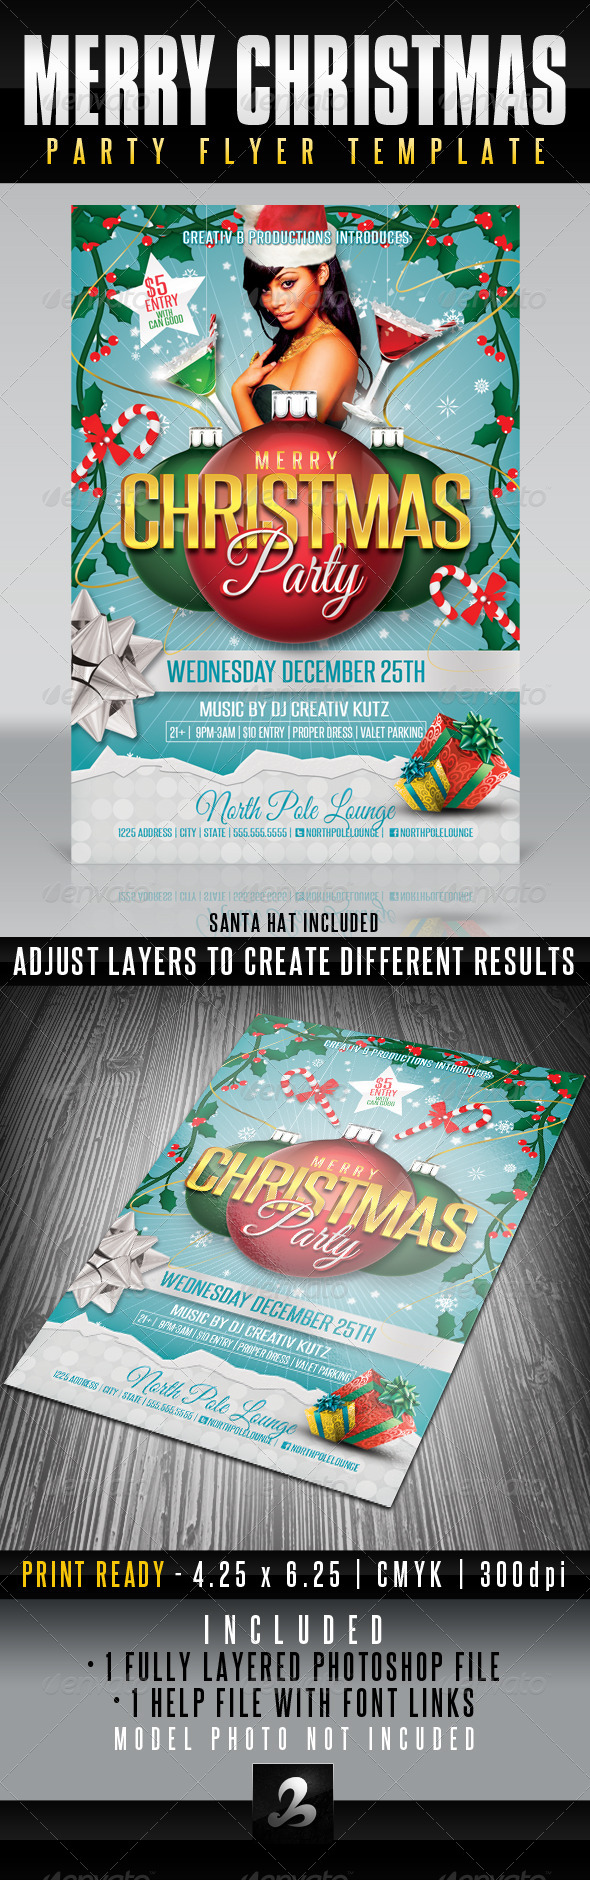 GraphicRiver Merry Christmas Party Flyer Template 6229115